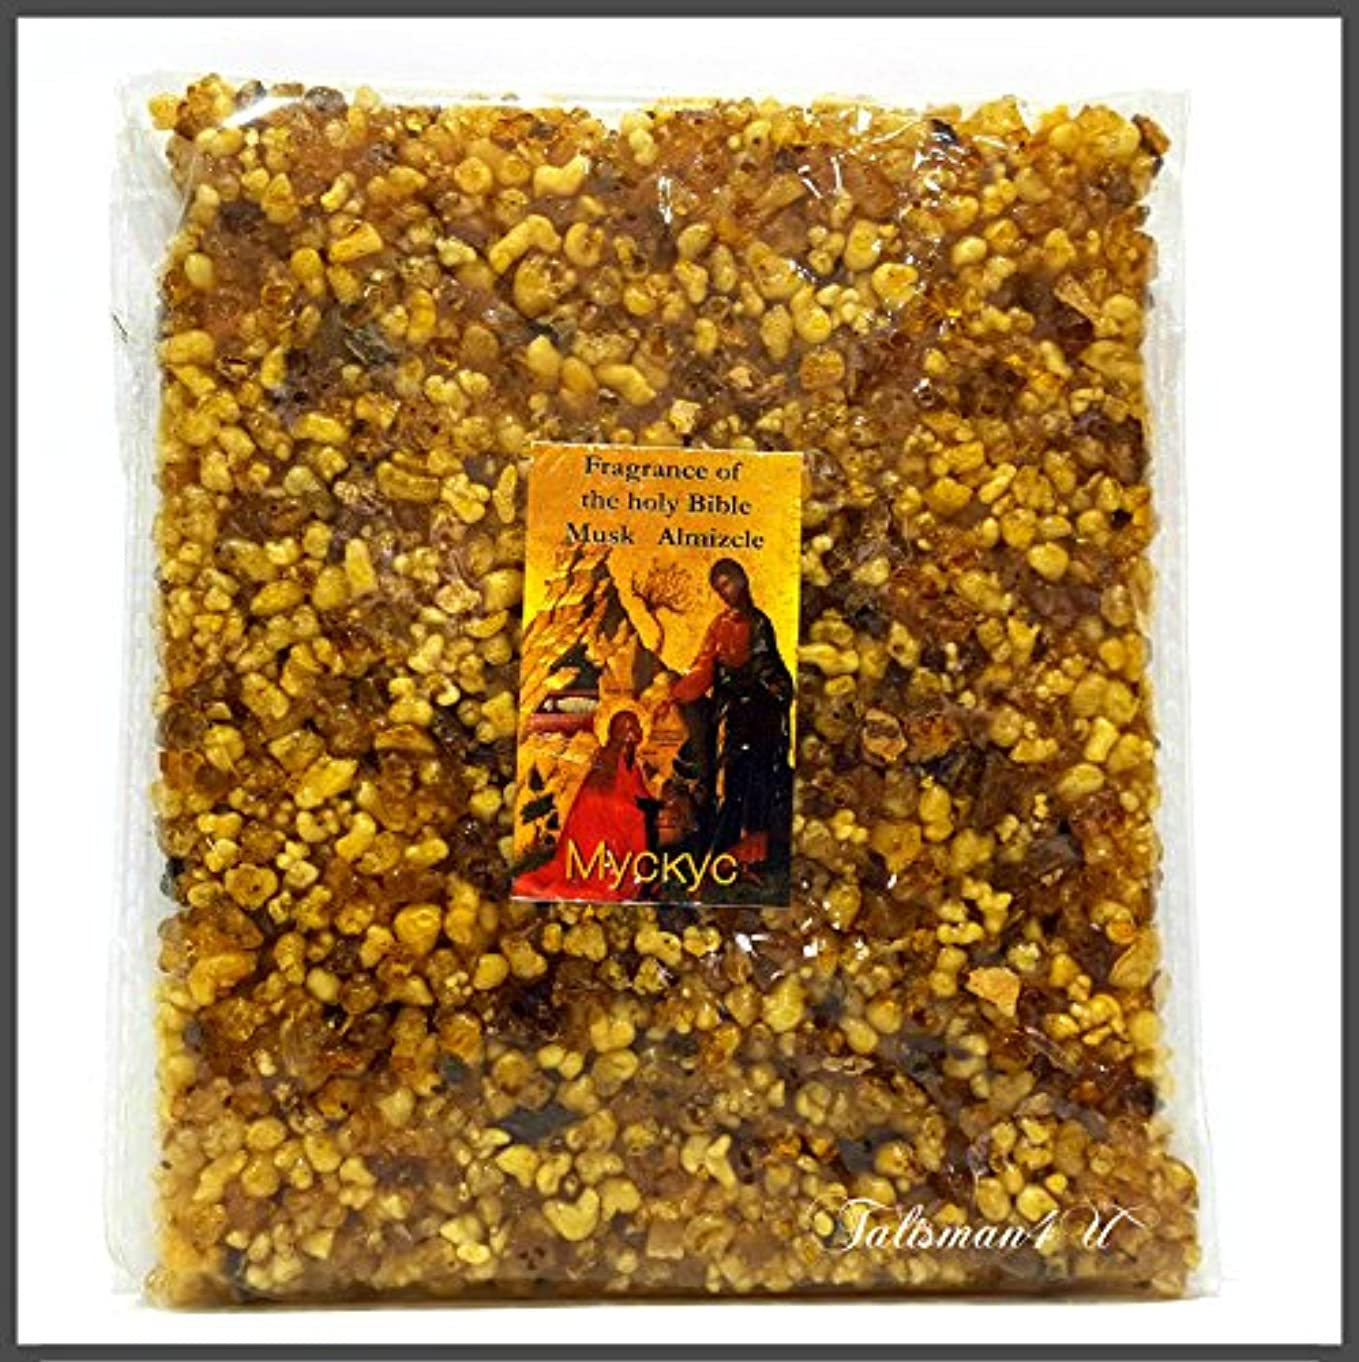 ムスクエルサレムIncense樹脂Aromatic Almizcle Frankincense of the Holy Land 3.5 Oz/100 g